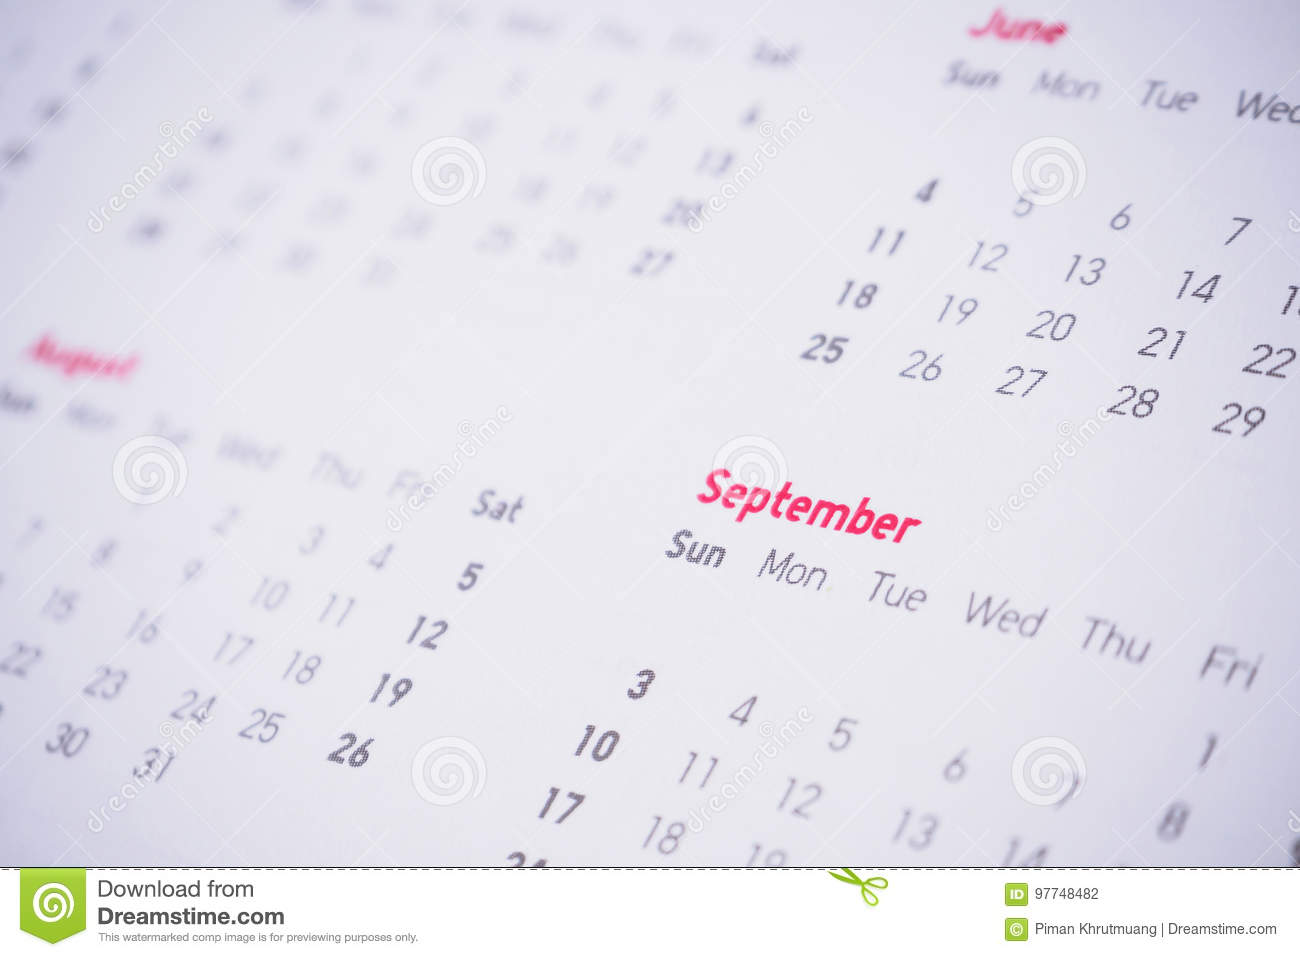 Months and dates on calendar